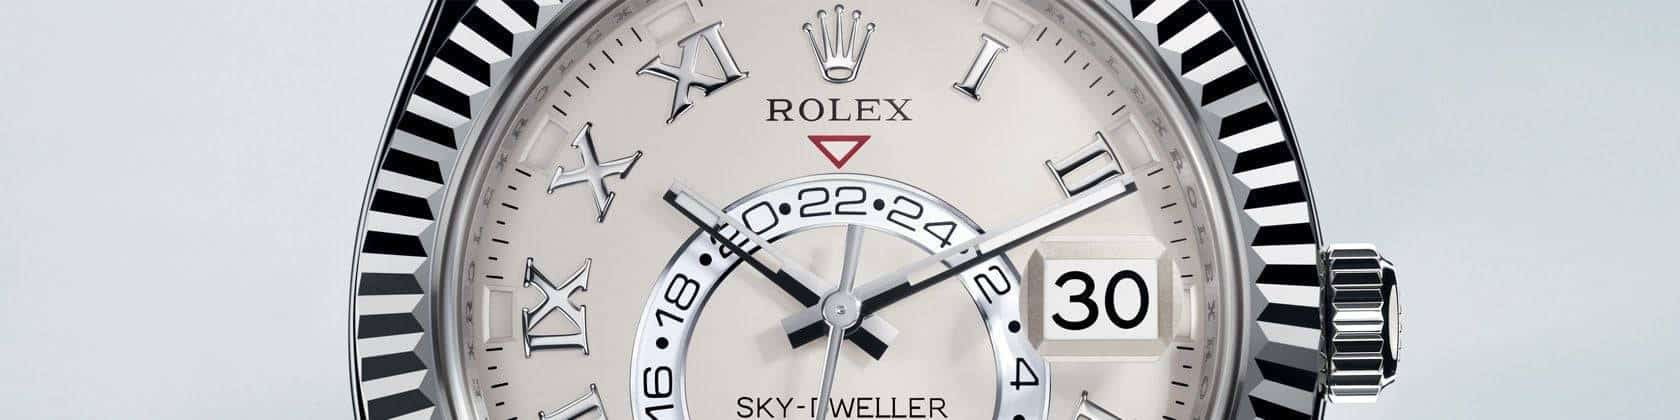 Rolex - exquisite clockwork